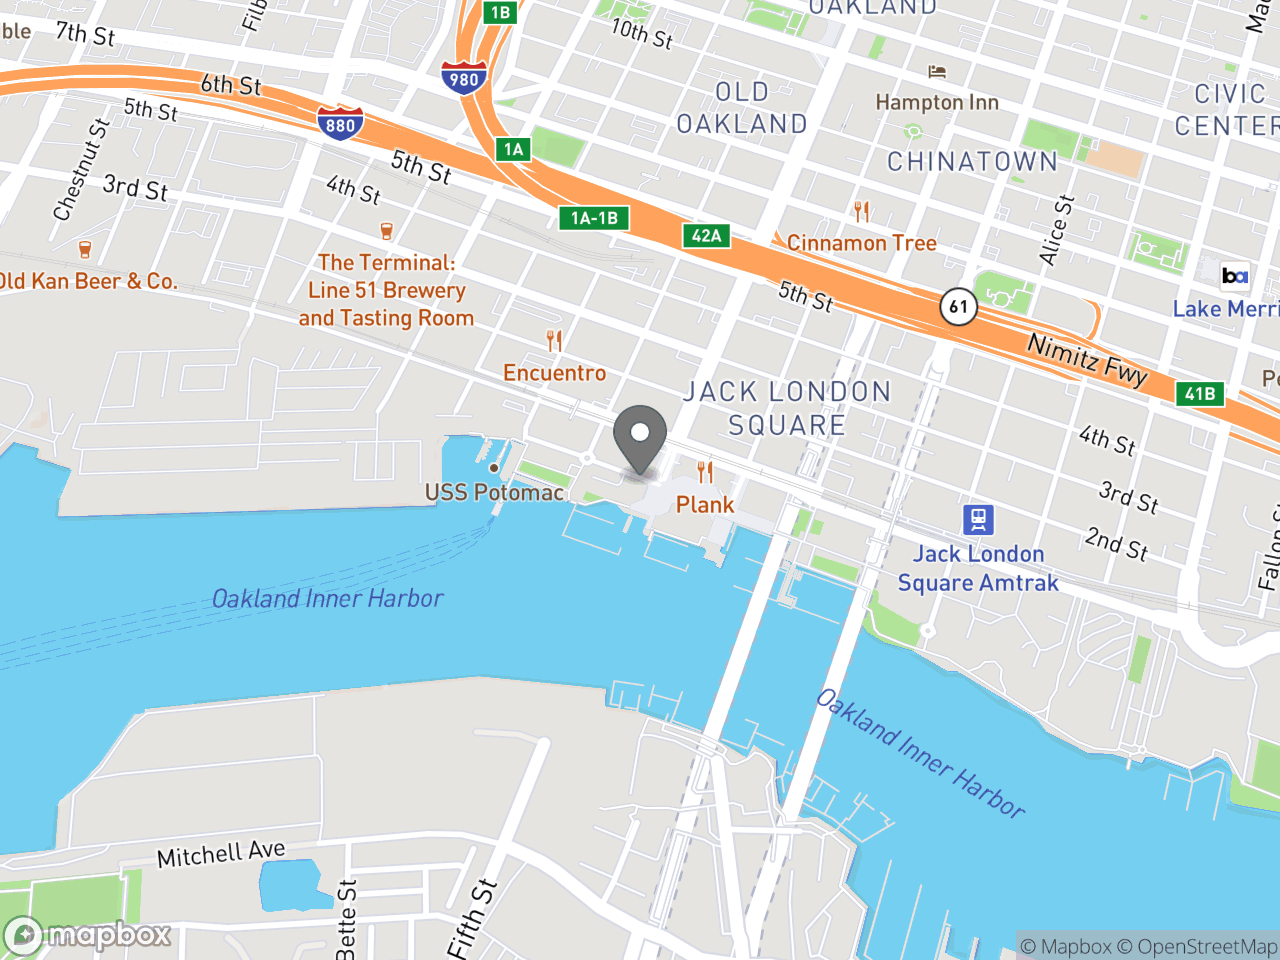 Map location for Police Commission Special Meeting September 14, 2019, located at Waterfront Hotel, Chart Room in Oakland, CA 94607